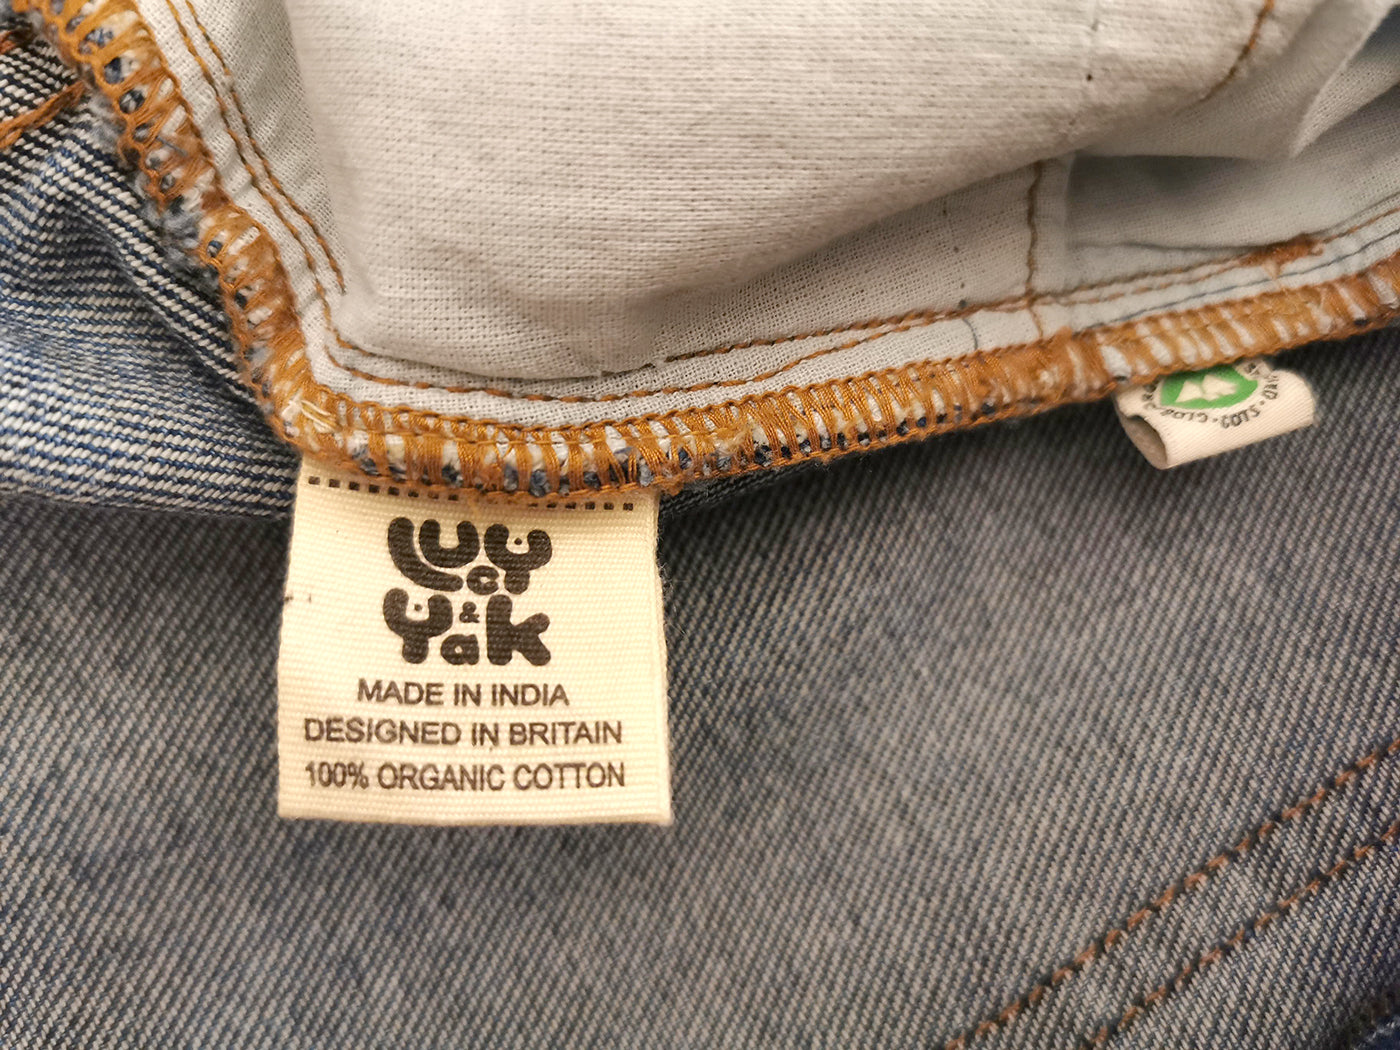 Sustainable organic cotton denim jeans